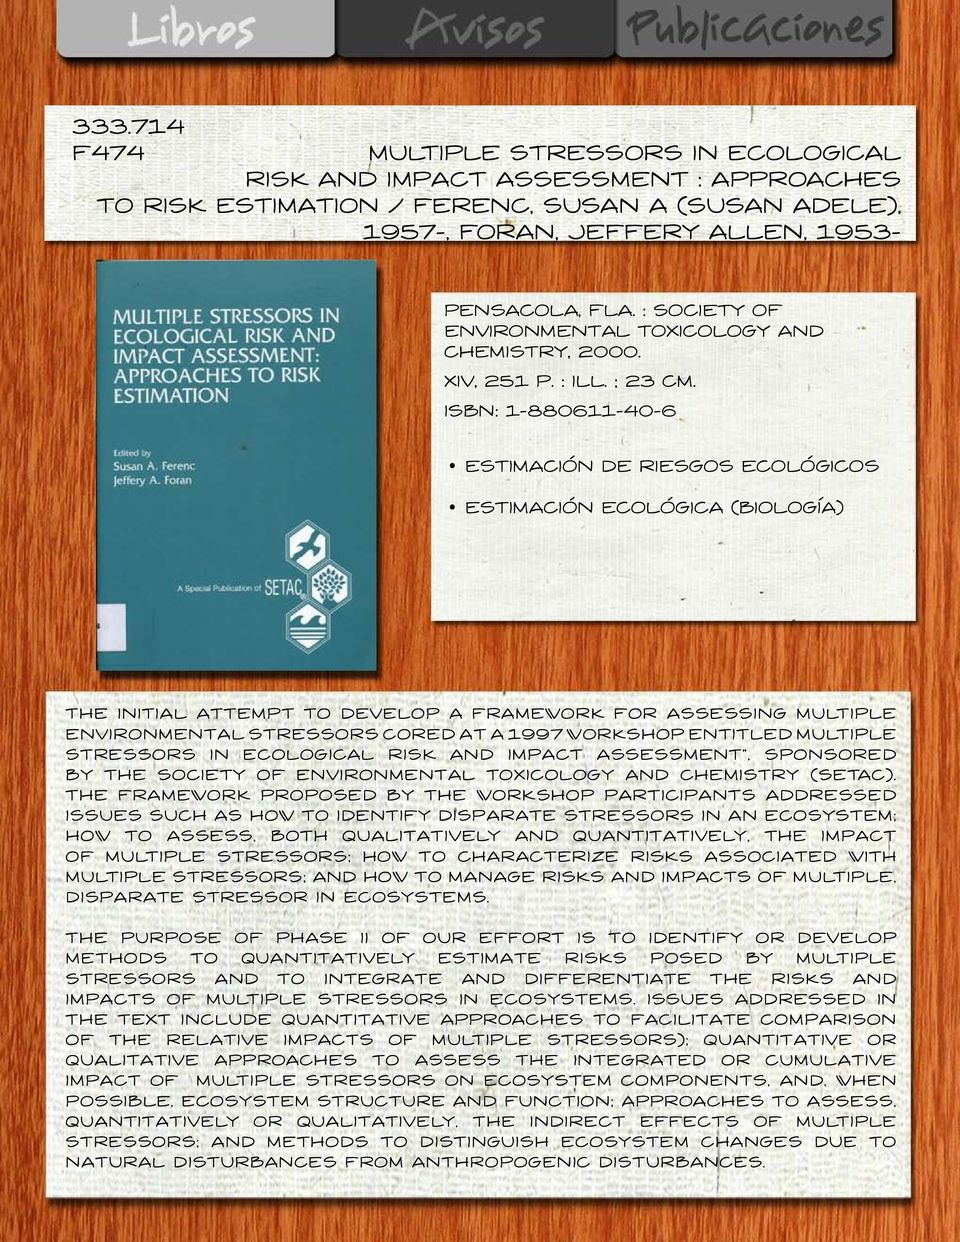 ISBN: 1-880611-40-6 Estimación de riesgos ecológicos Estimación ecológica (Biología) The initial attempt to develop a framework for assessing multiple environmental stressors cored at a 1997 workshop